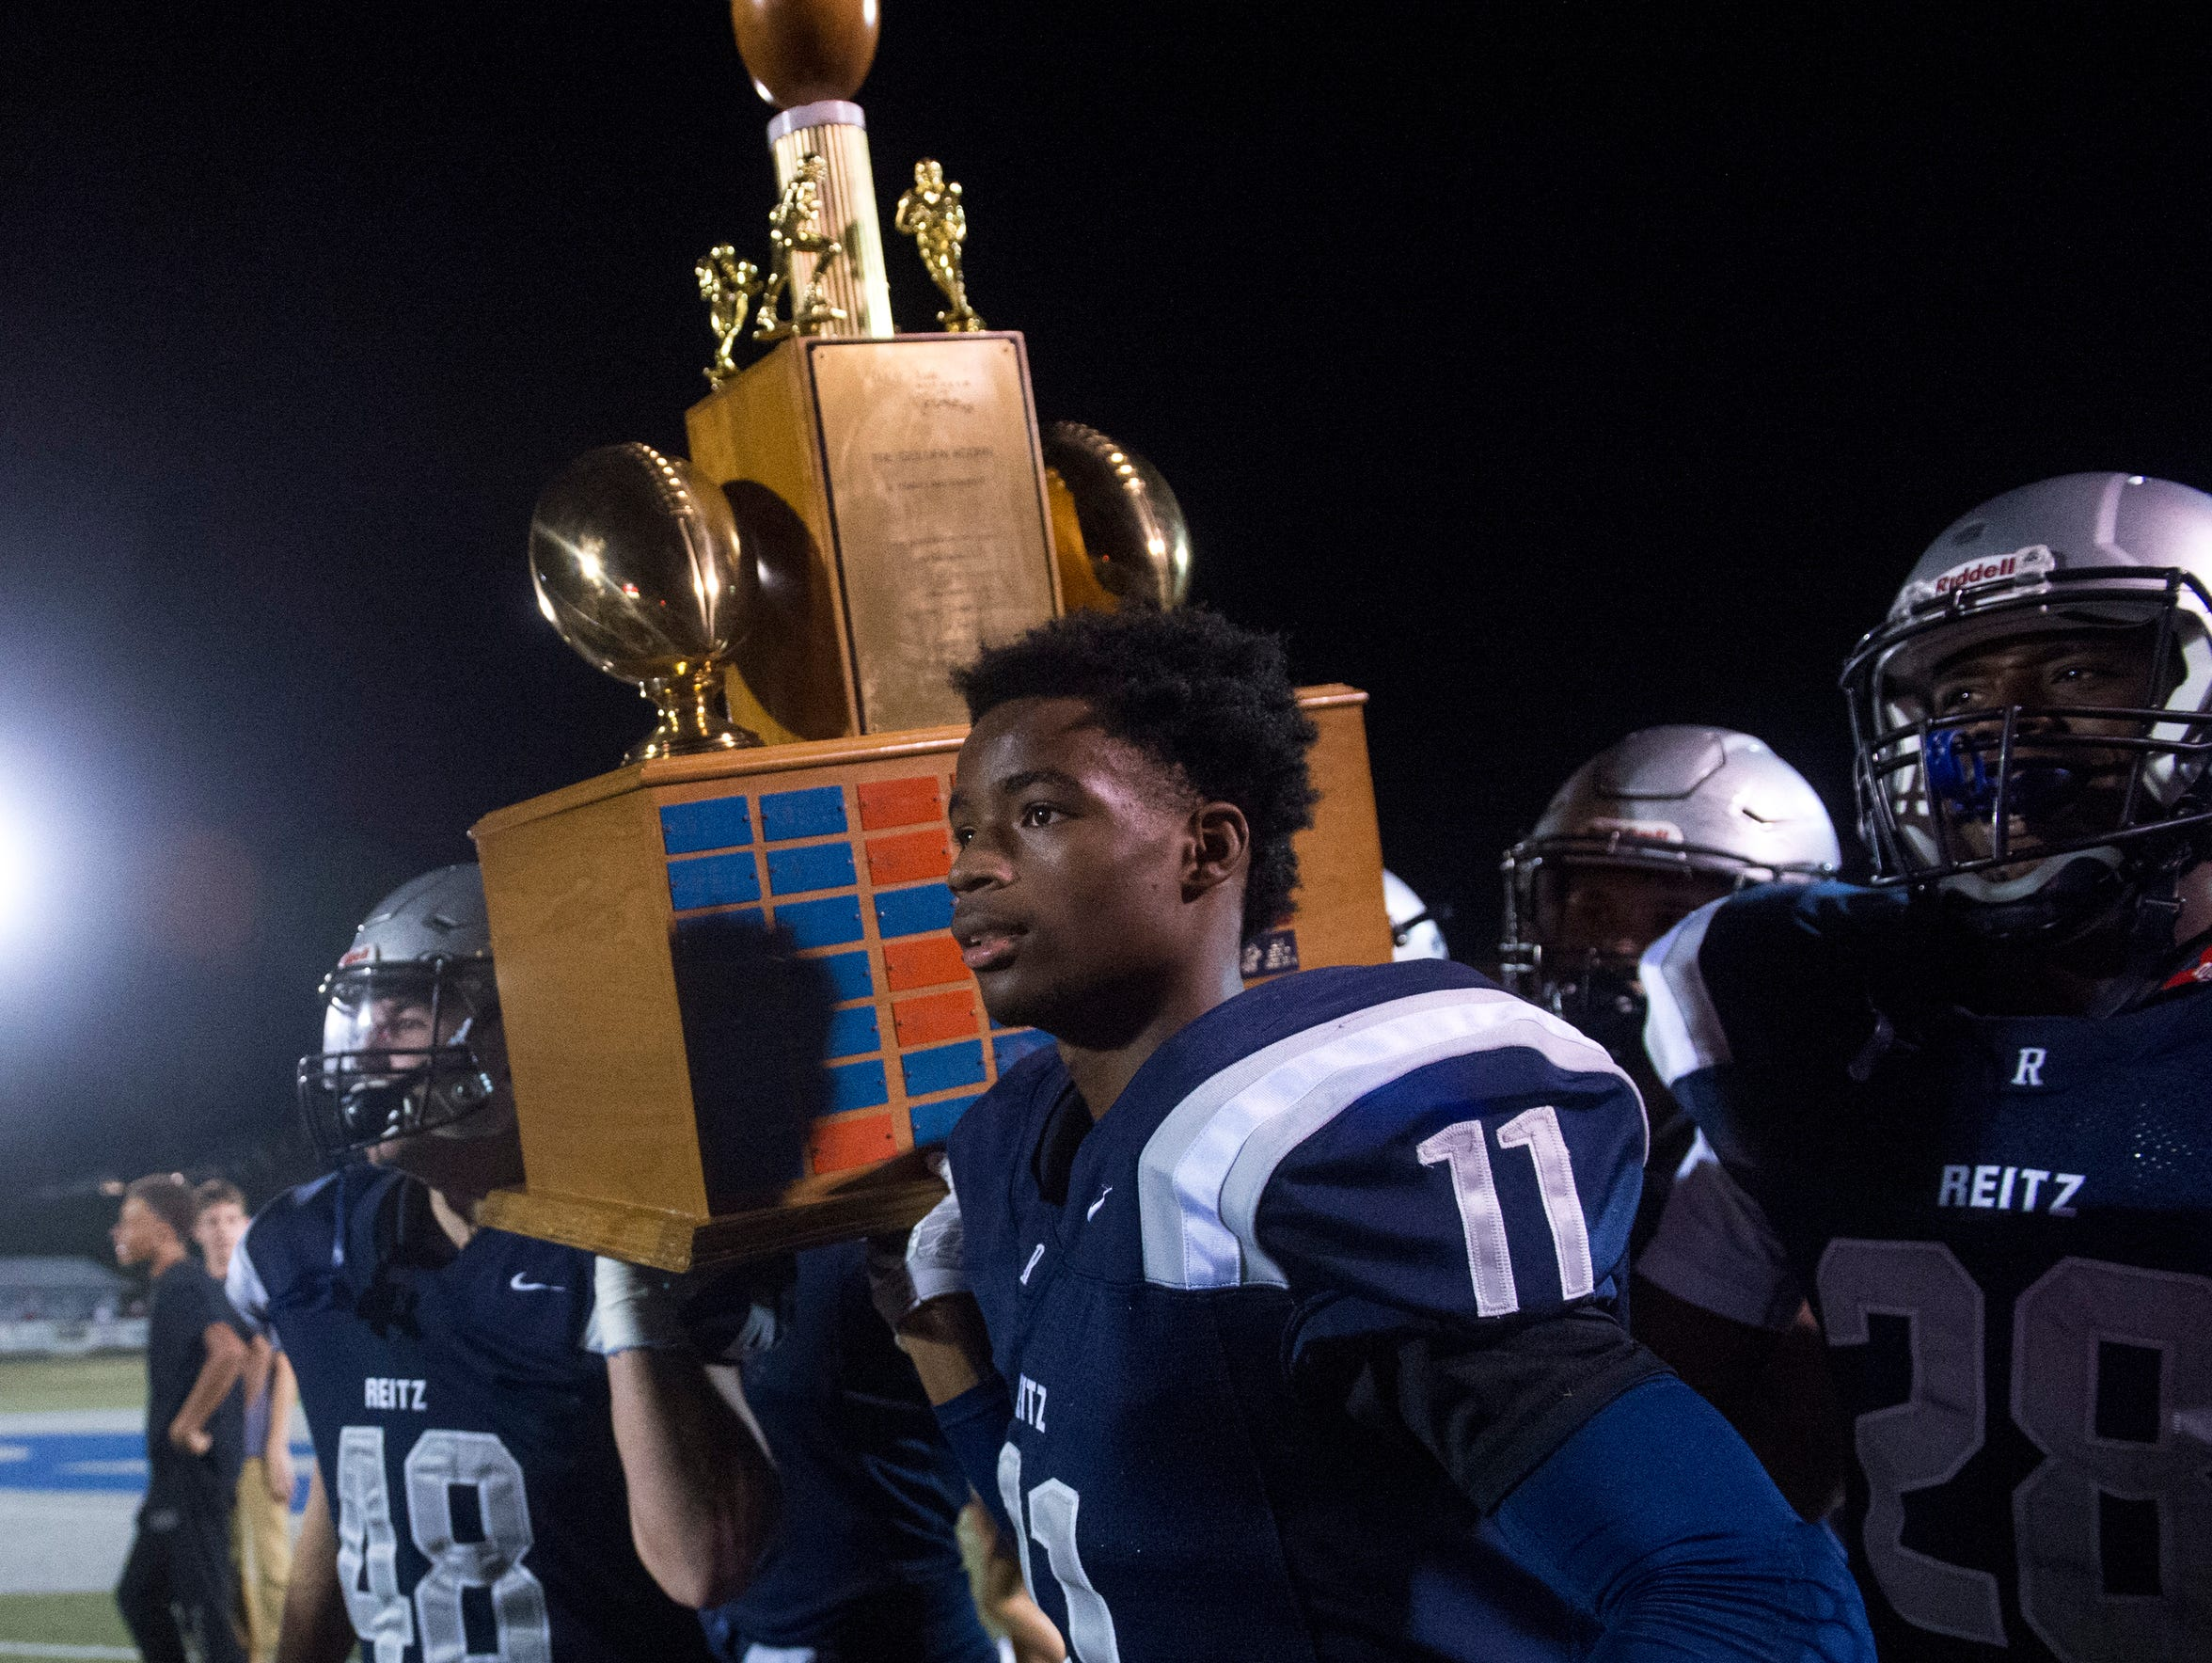 Reitz's Clayton Groves hoists the West Side Nut Club trophy after a wild 49-46 victory last year. The Panthers have won the last two matchups against rival Mater Dei.